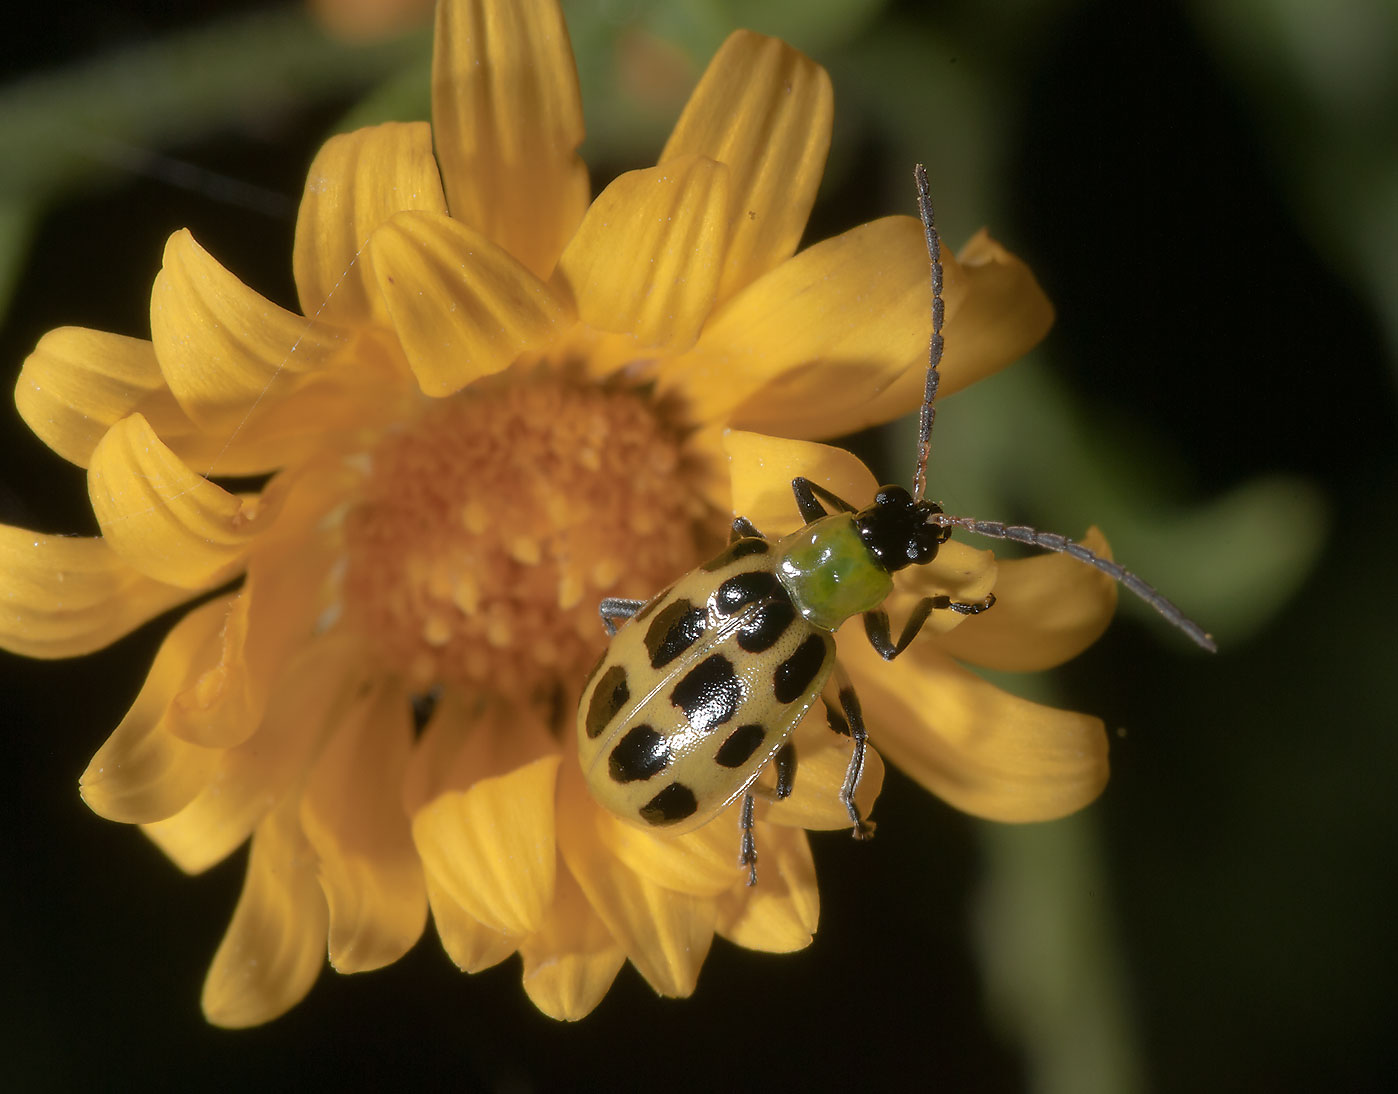 Corn beetle eating yellow aster in Lick Creek Park. College Station, Texas